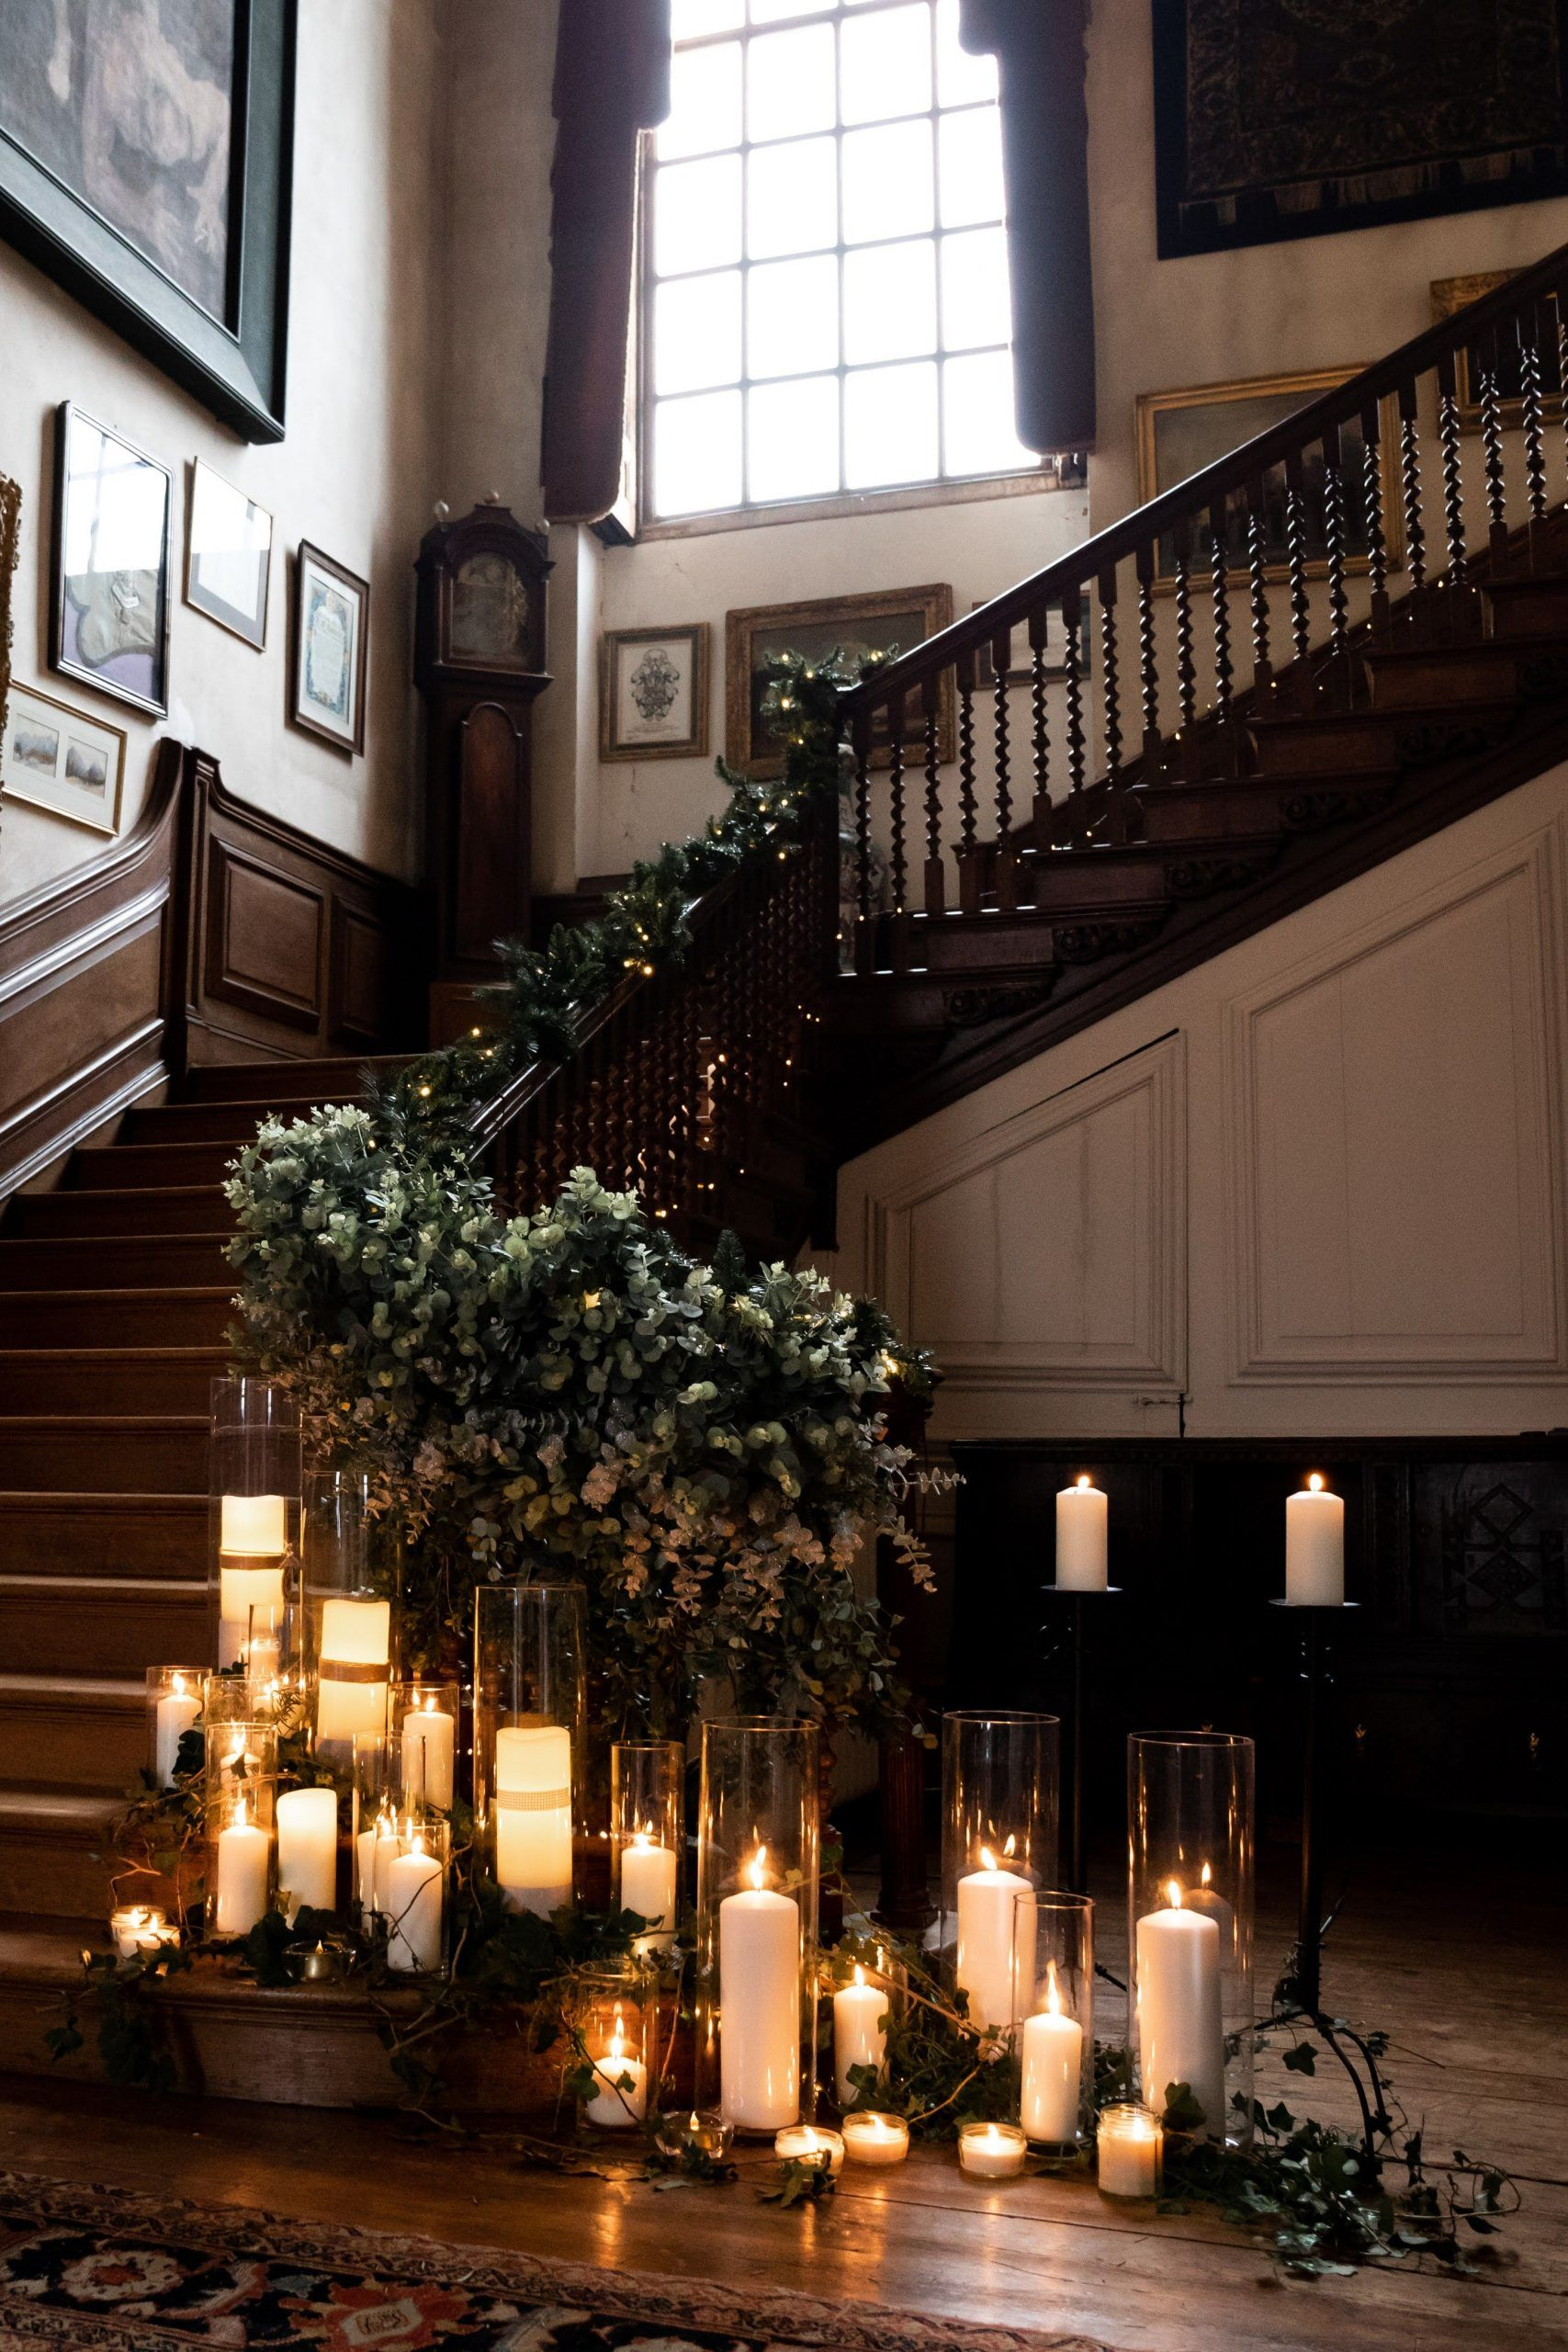 Grand staircase with candlelight for wedding ceremony#candlelight #ceremony #grand #staircase #wedding